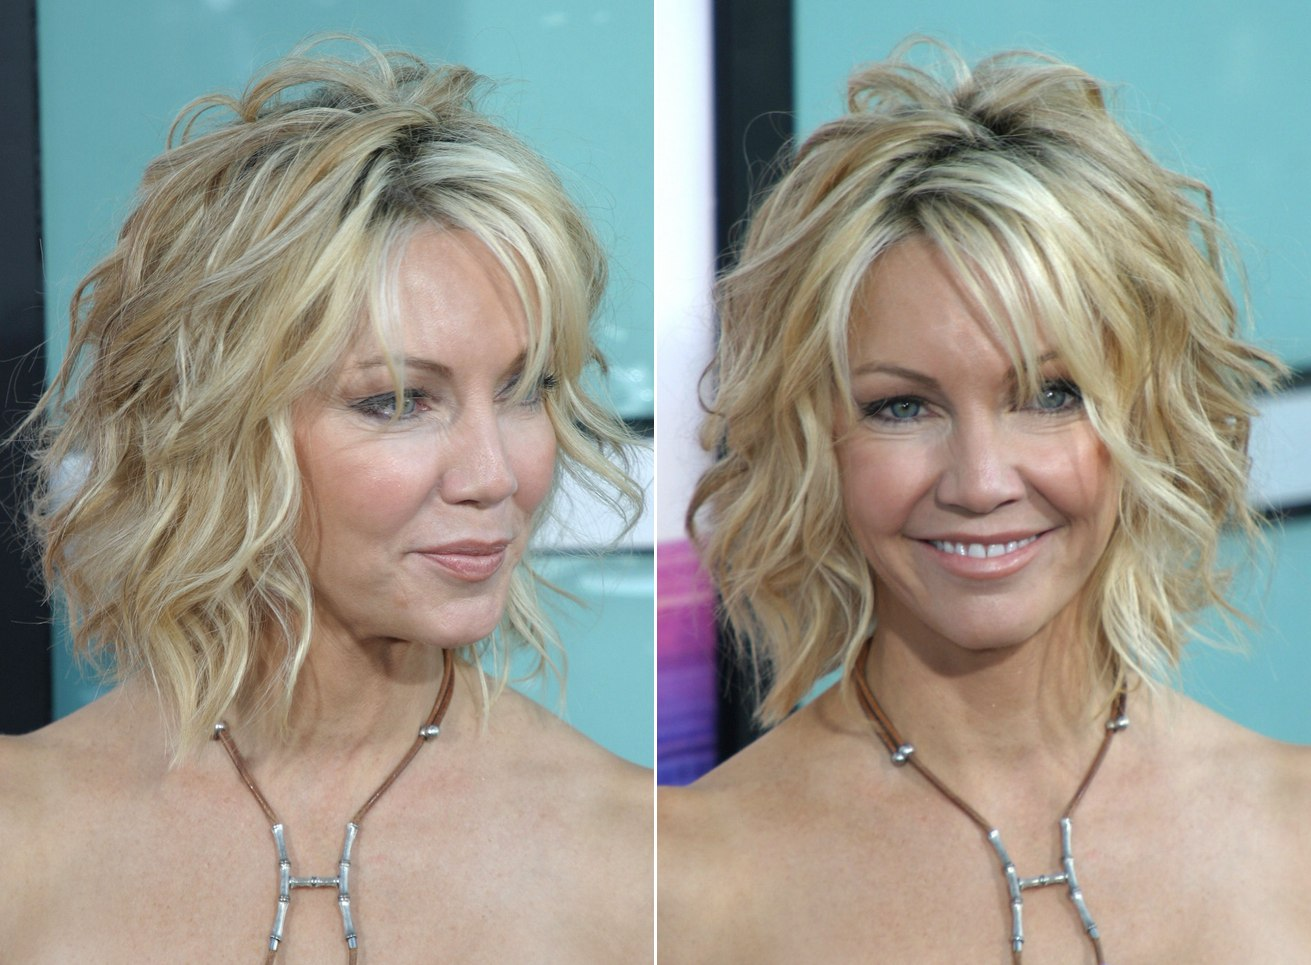 Swell Heather Locklear With Her Hair Short And Cut Into A One Length Bob Short Hairstyles Gunalazisus